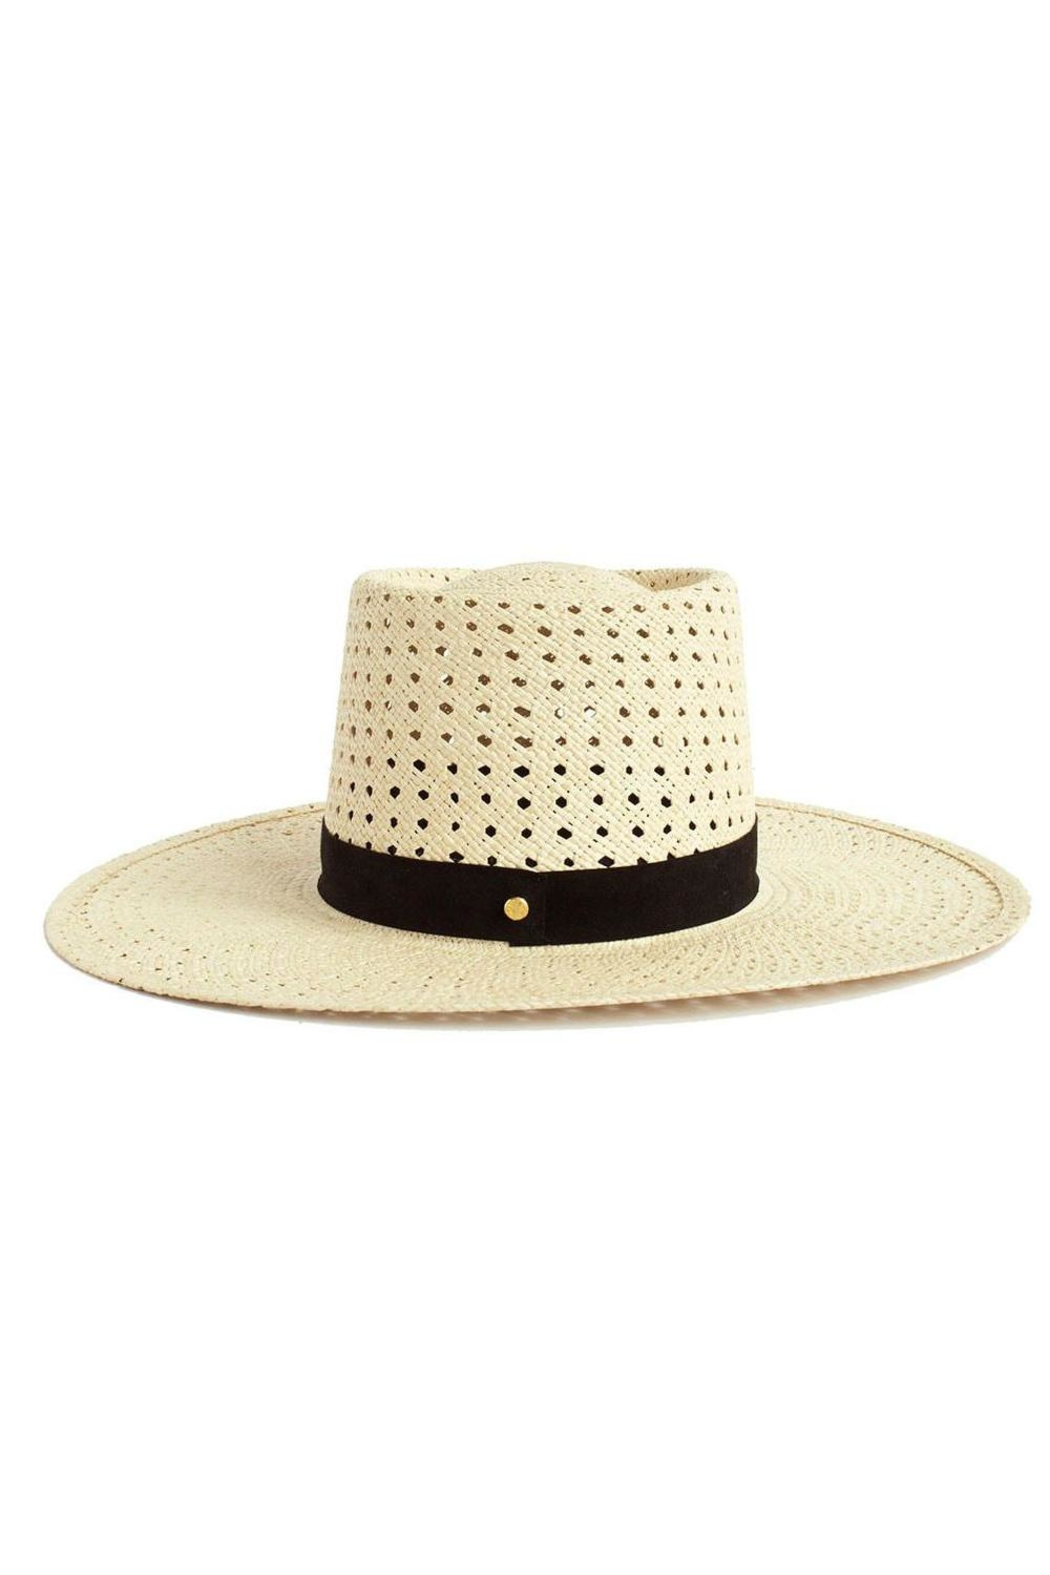 Janessa Leone Maxime Straw Hat - Side Cropped Image